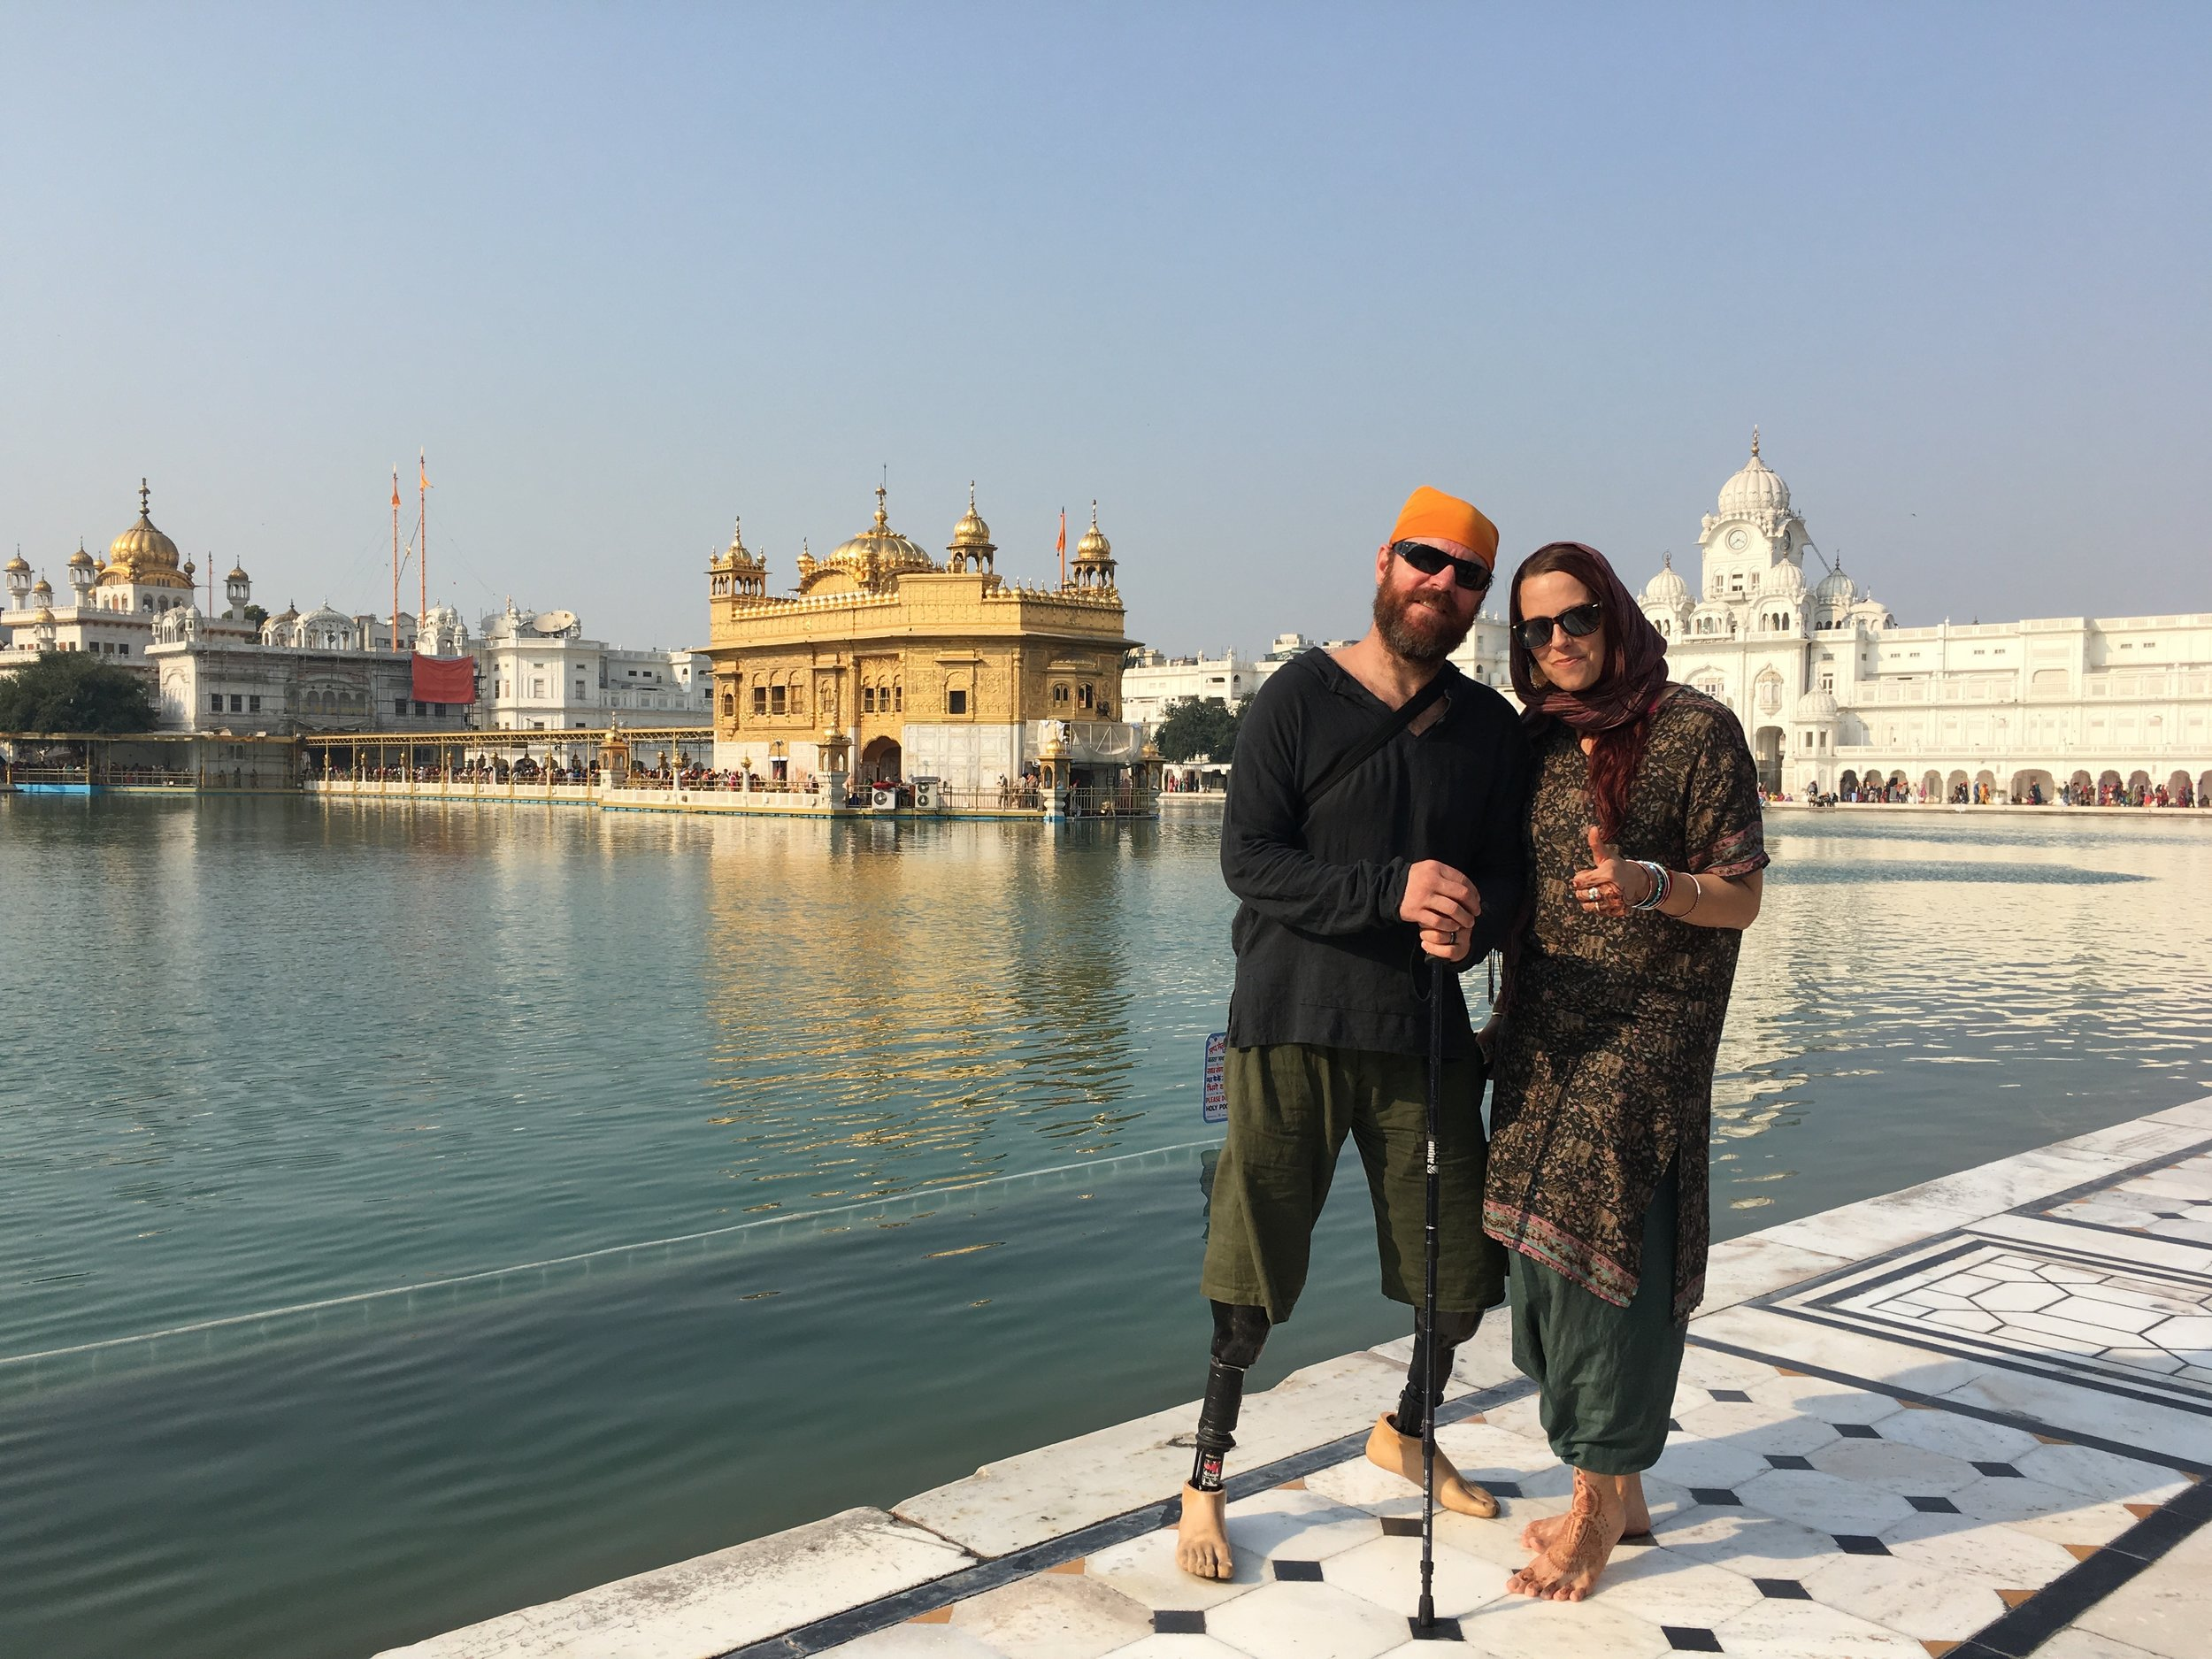 Sensory overload at the Golden Temple. Music, people, smells, good vibes, and good tears.